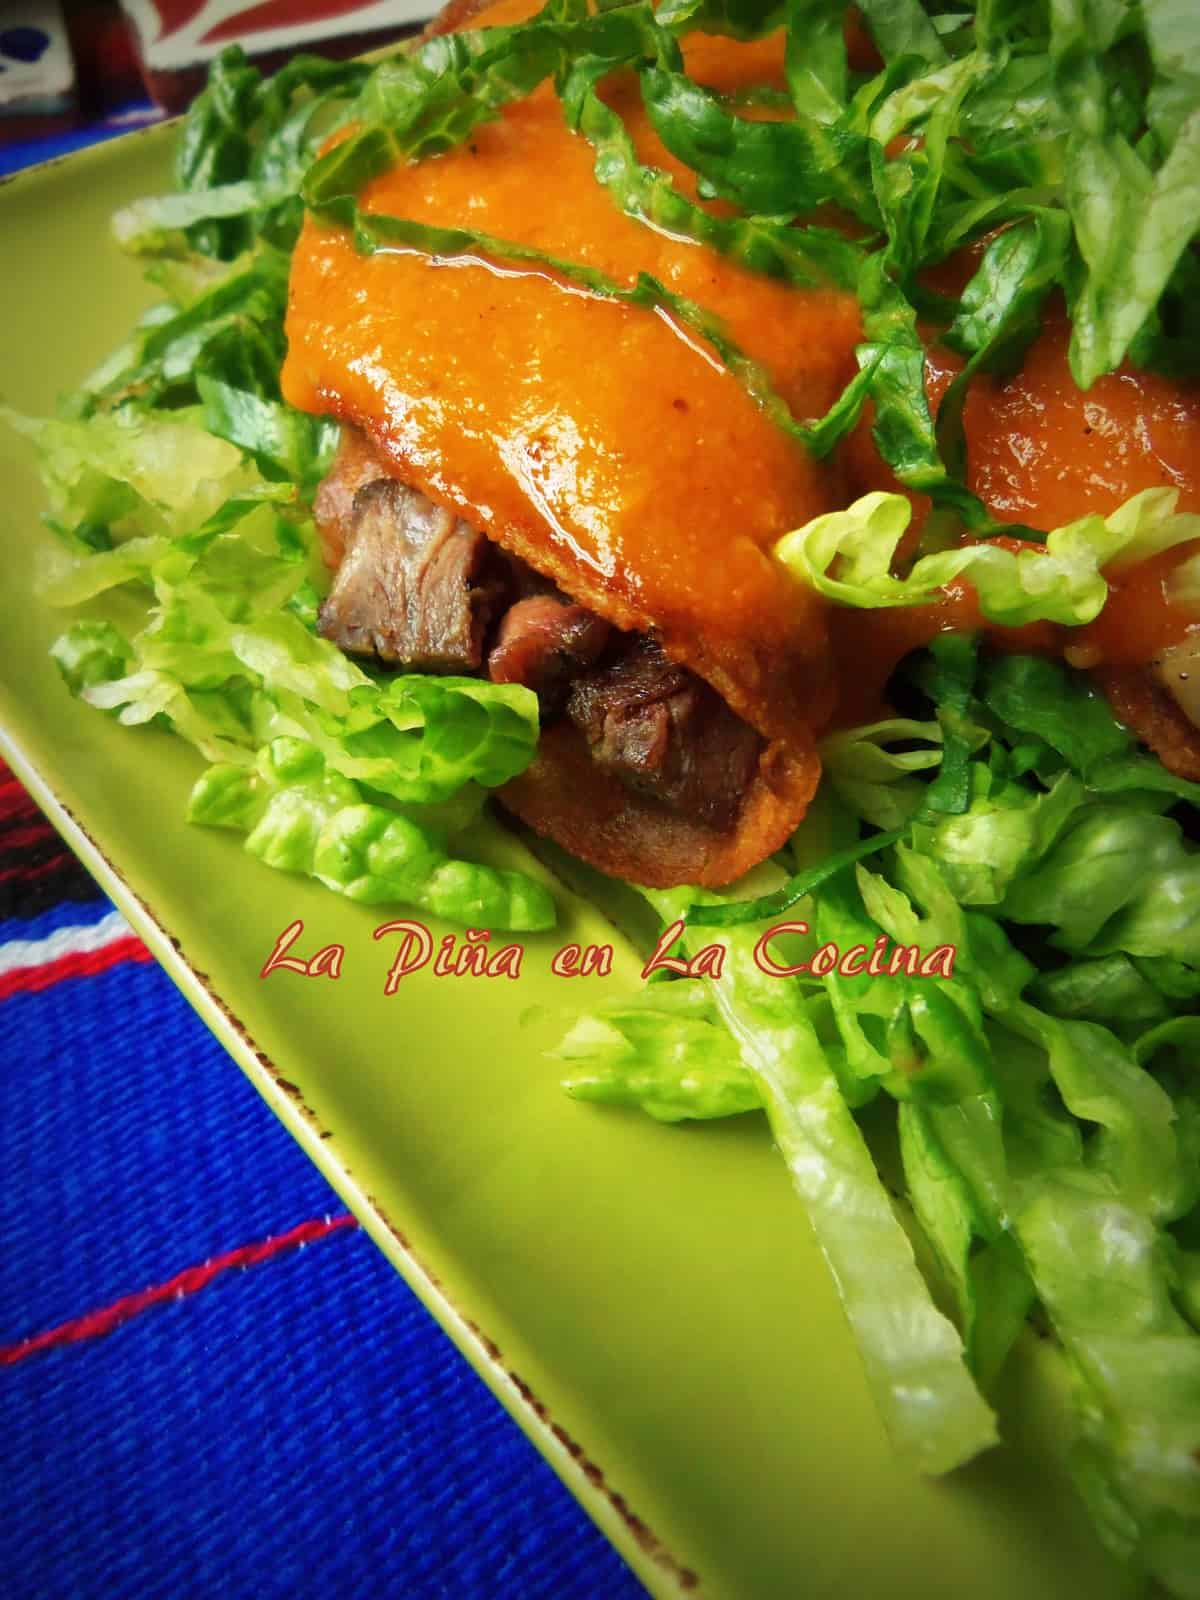 This enchilada sauce was prepared in the same way as recipe above, with the added 1 cup of roasted pureed tomatoes. Filled with thinly sliced steak.